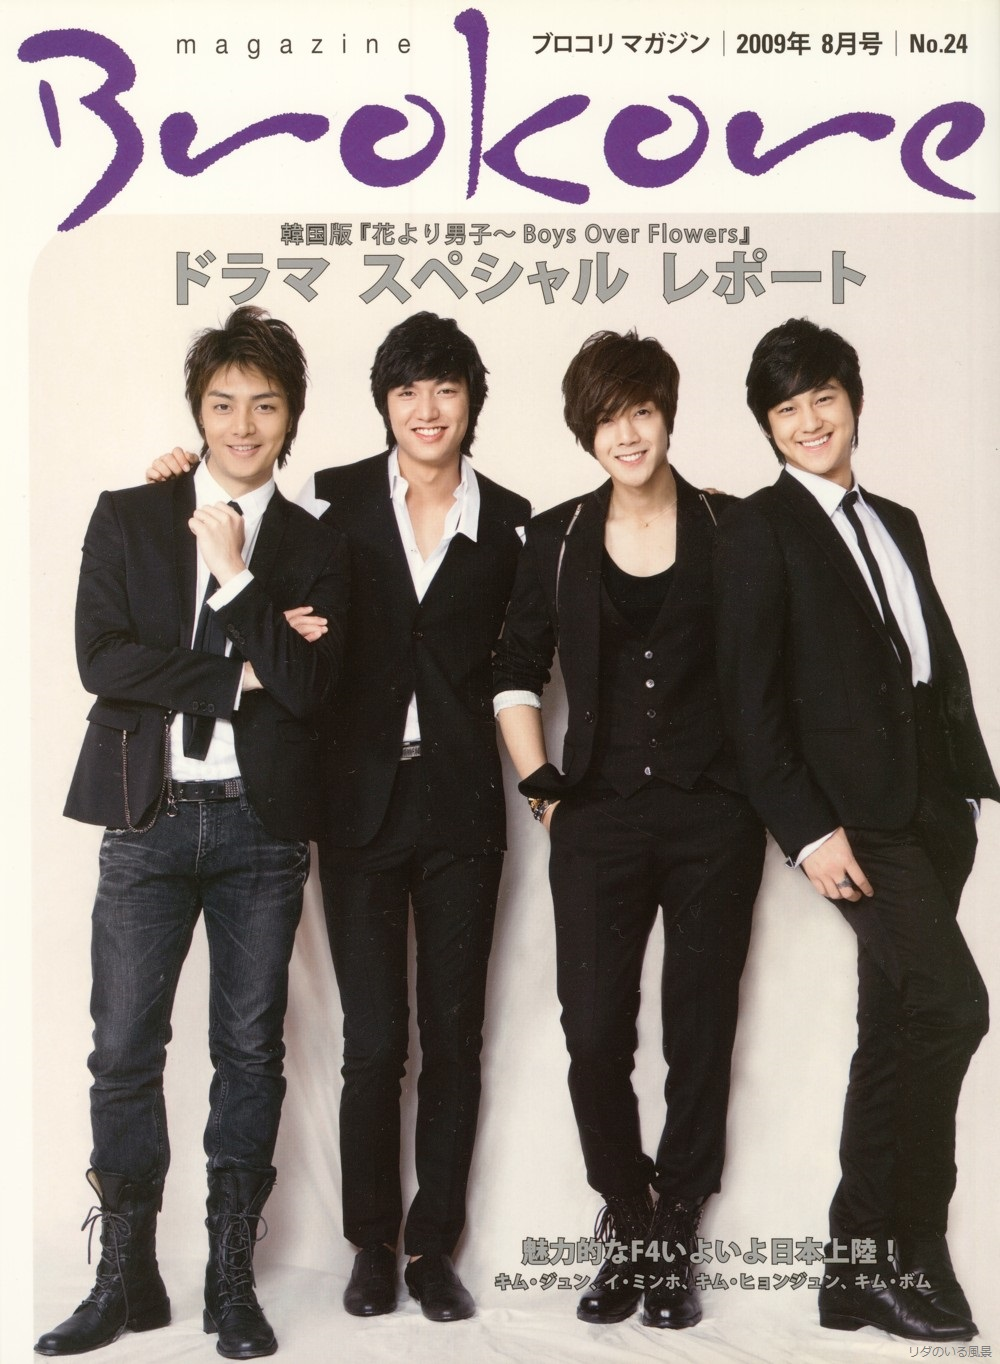 Start from the August issue of Boys Over Flowers - No.24 2009 years Brokore magazine